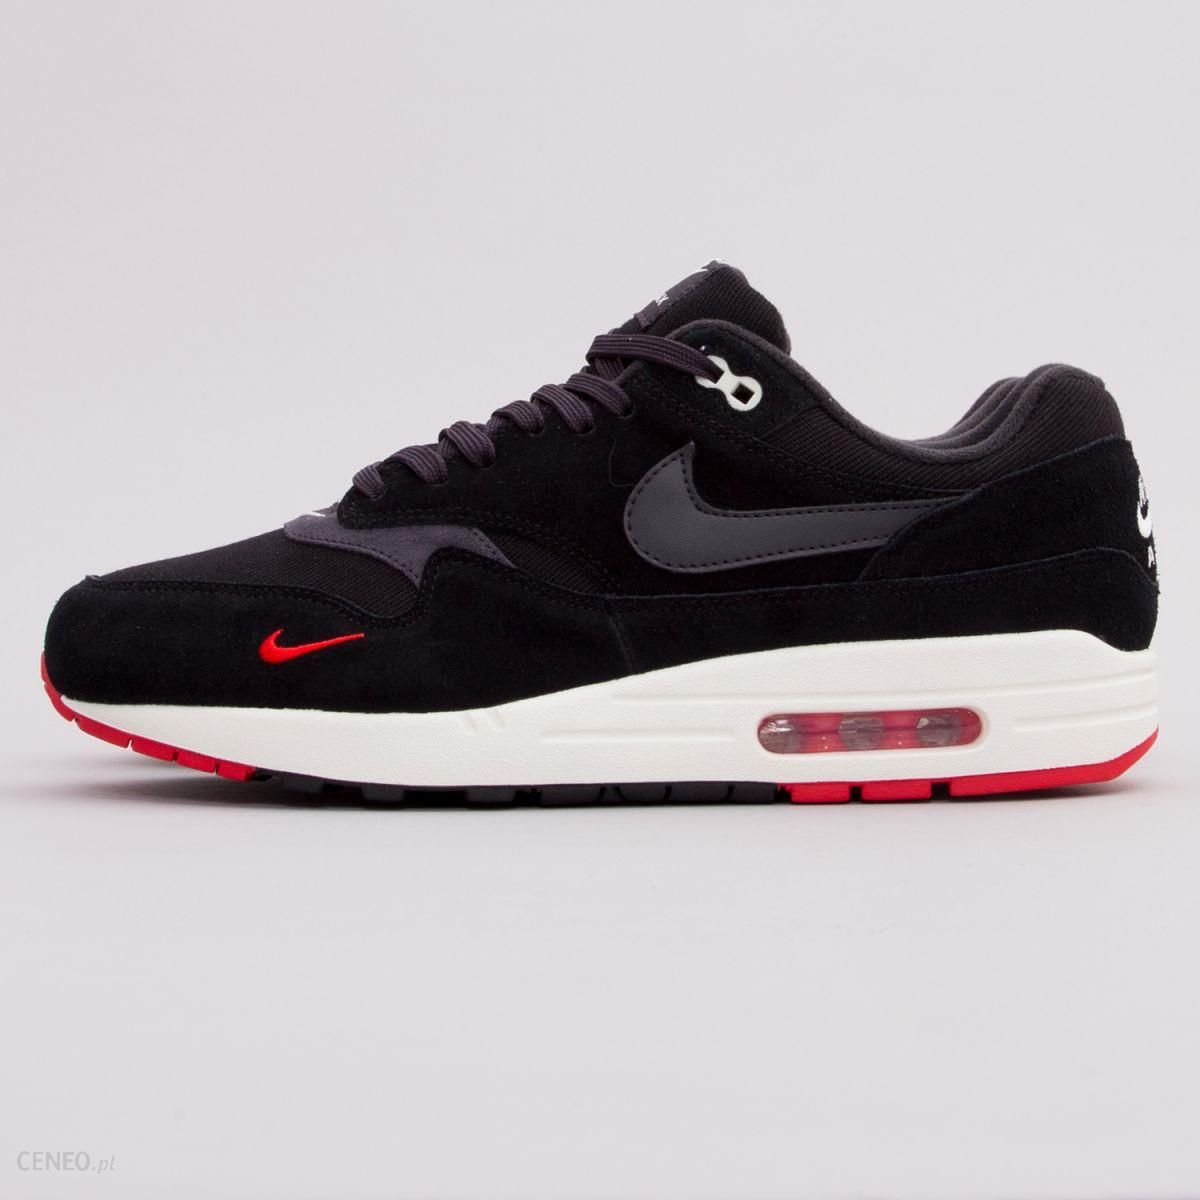 best sneakers c25b9 c5969 Nike AIR MAX 1 PREMIUM MINI SWOOSH 875844-007 - zdjęcie 1